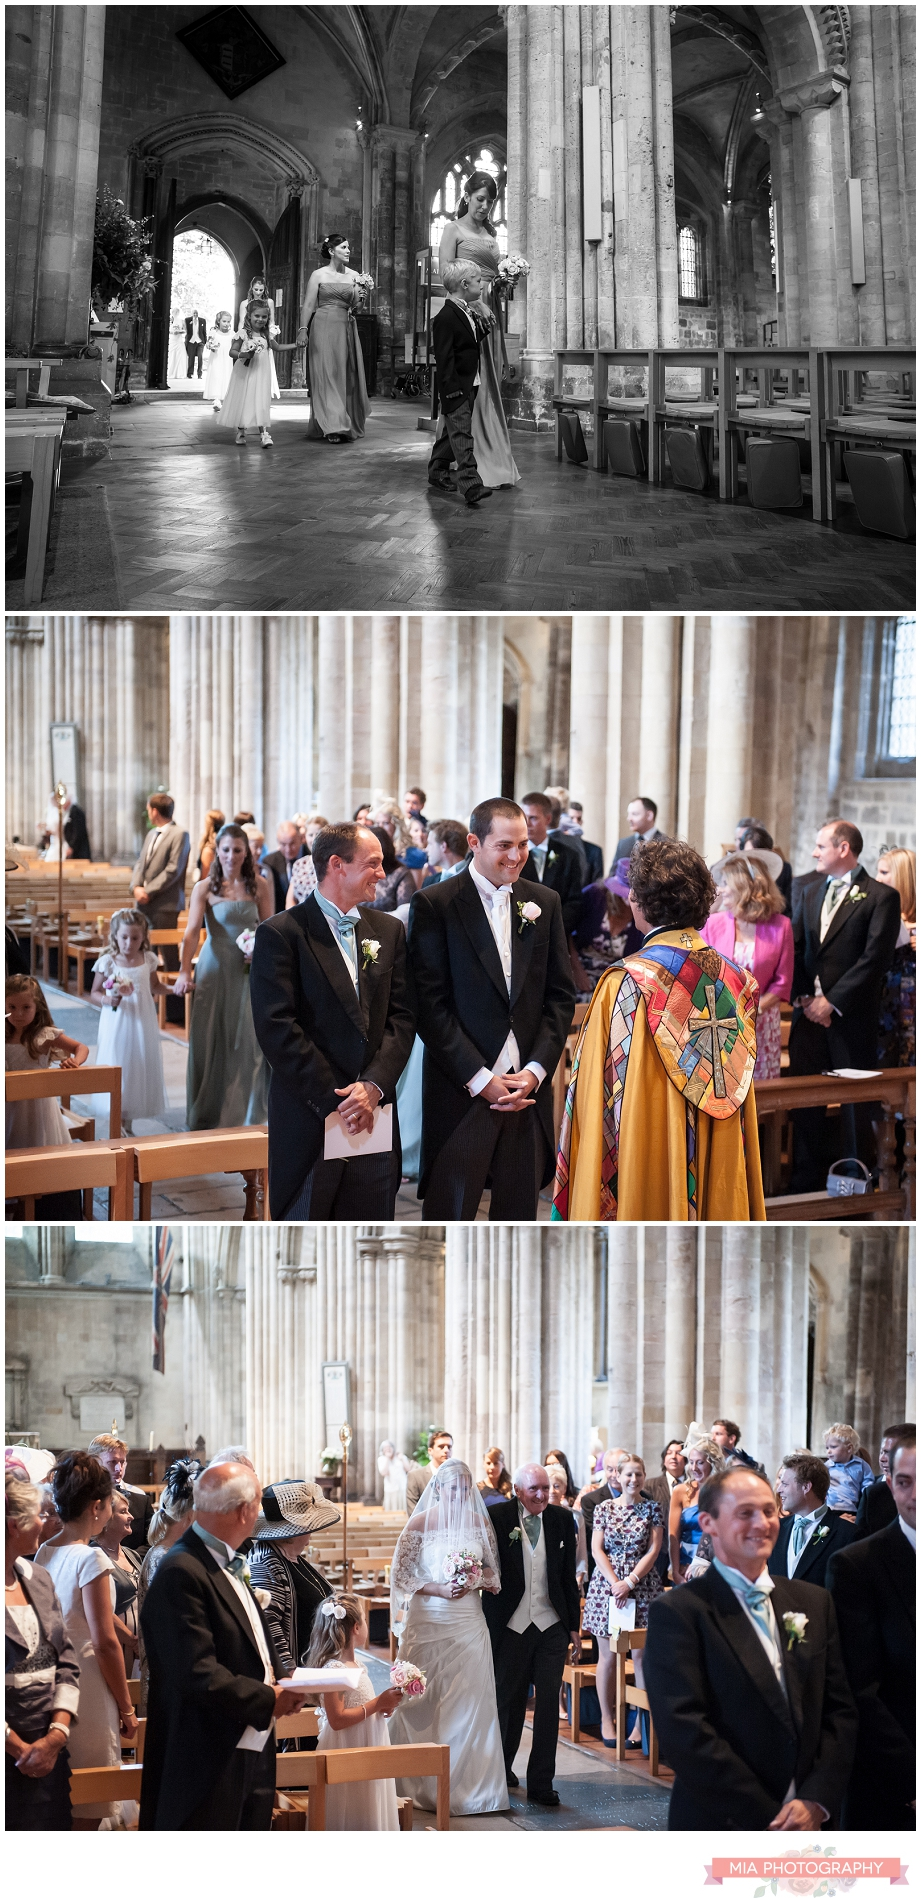 Wedding service at romsey abbey in hampshire